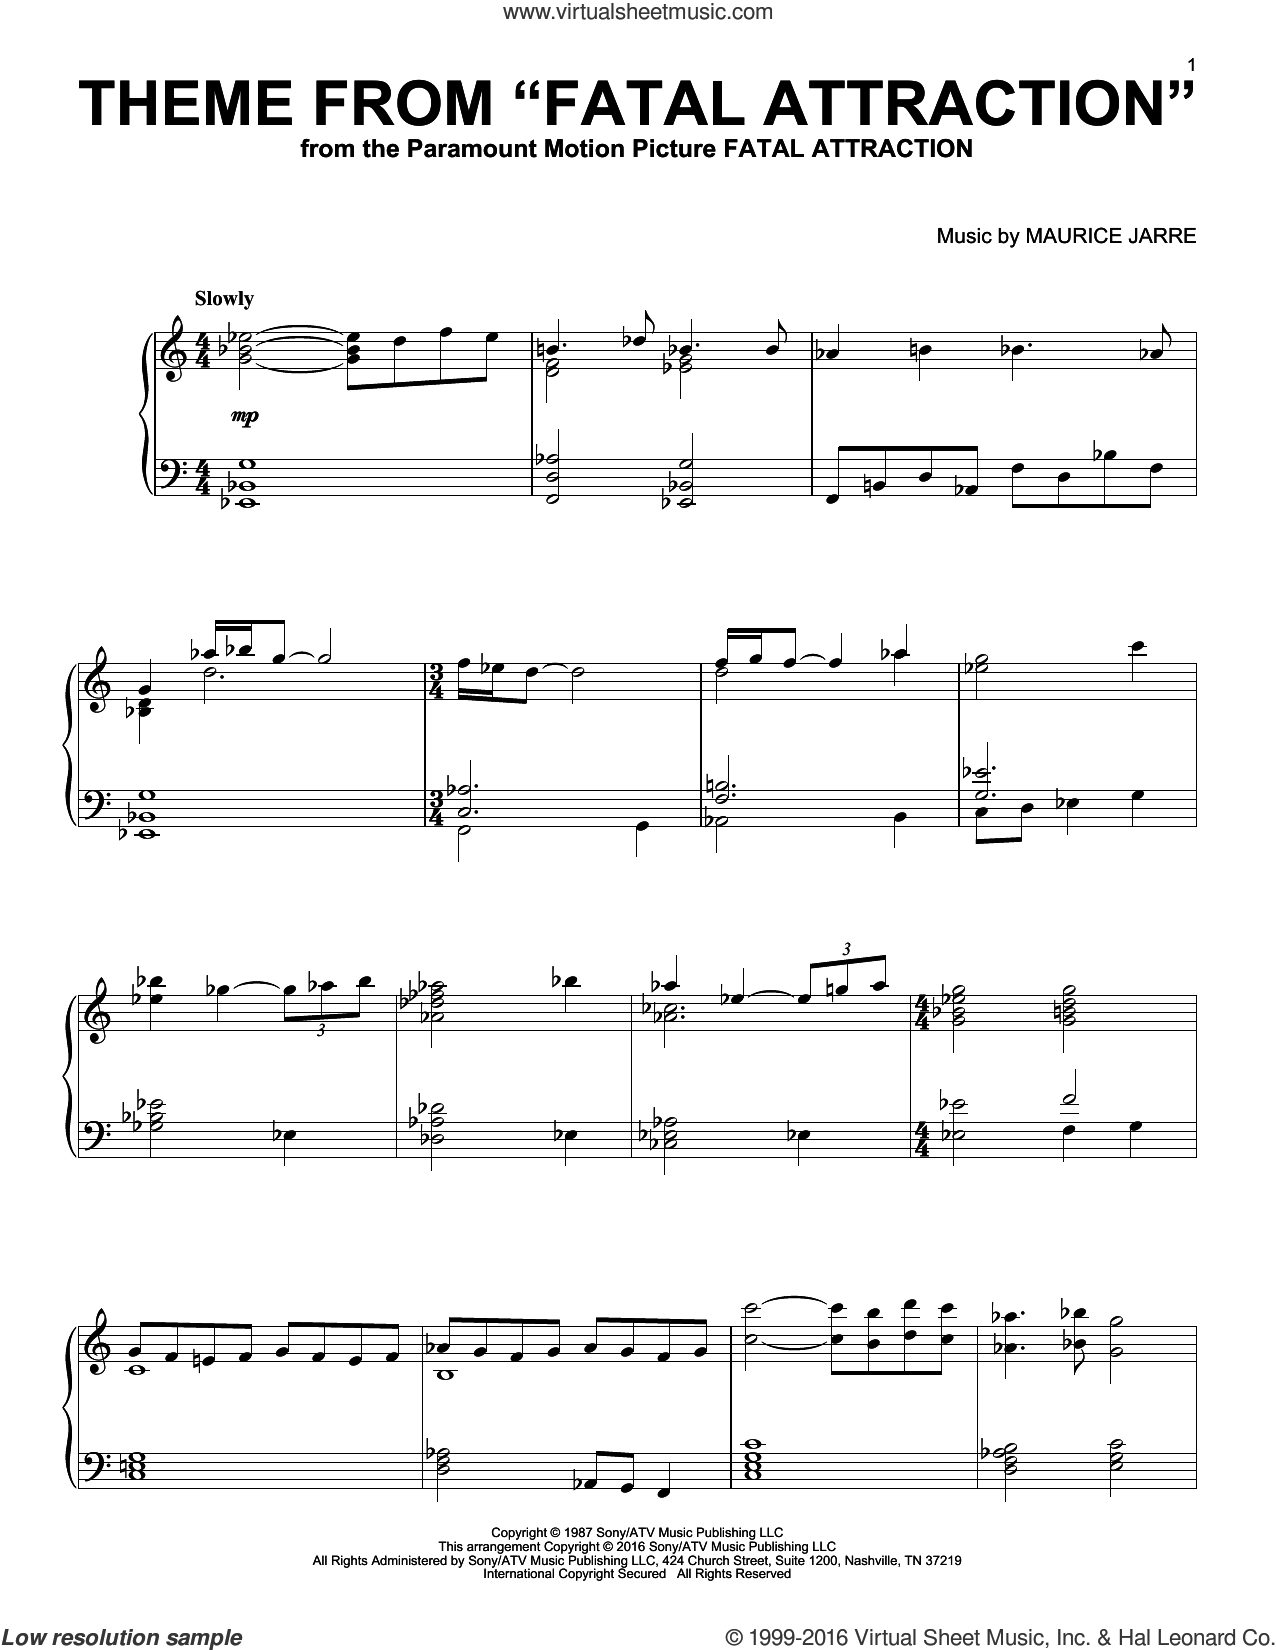 Theme From Fatal Attraction sheet music for piano solo by Maurice Jarre, intermediate skill level